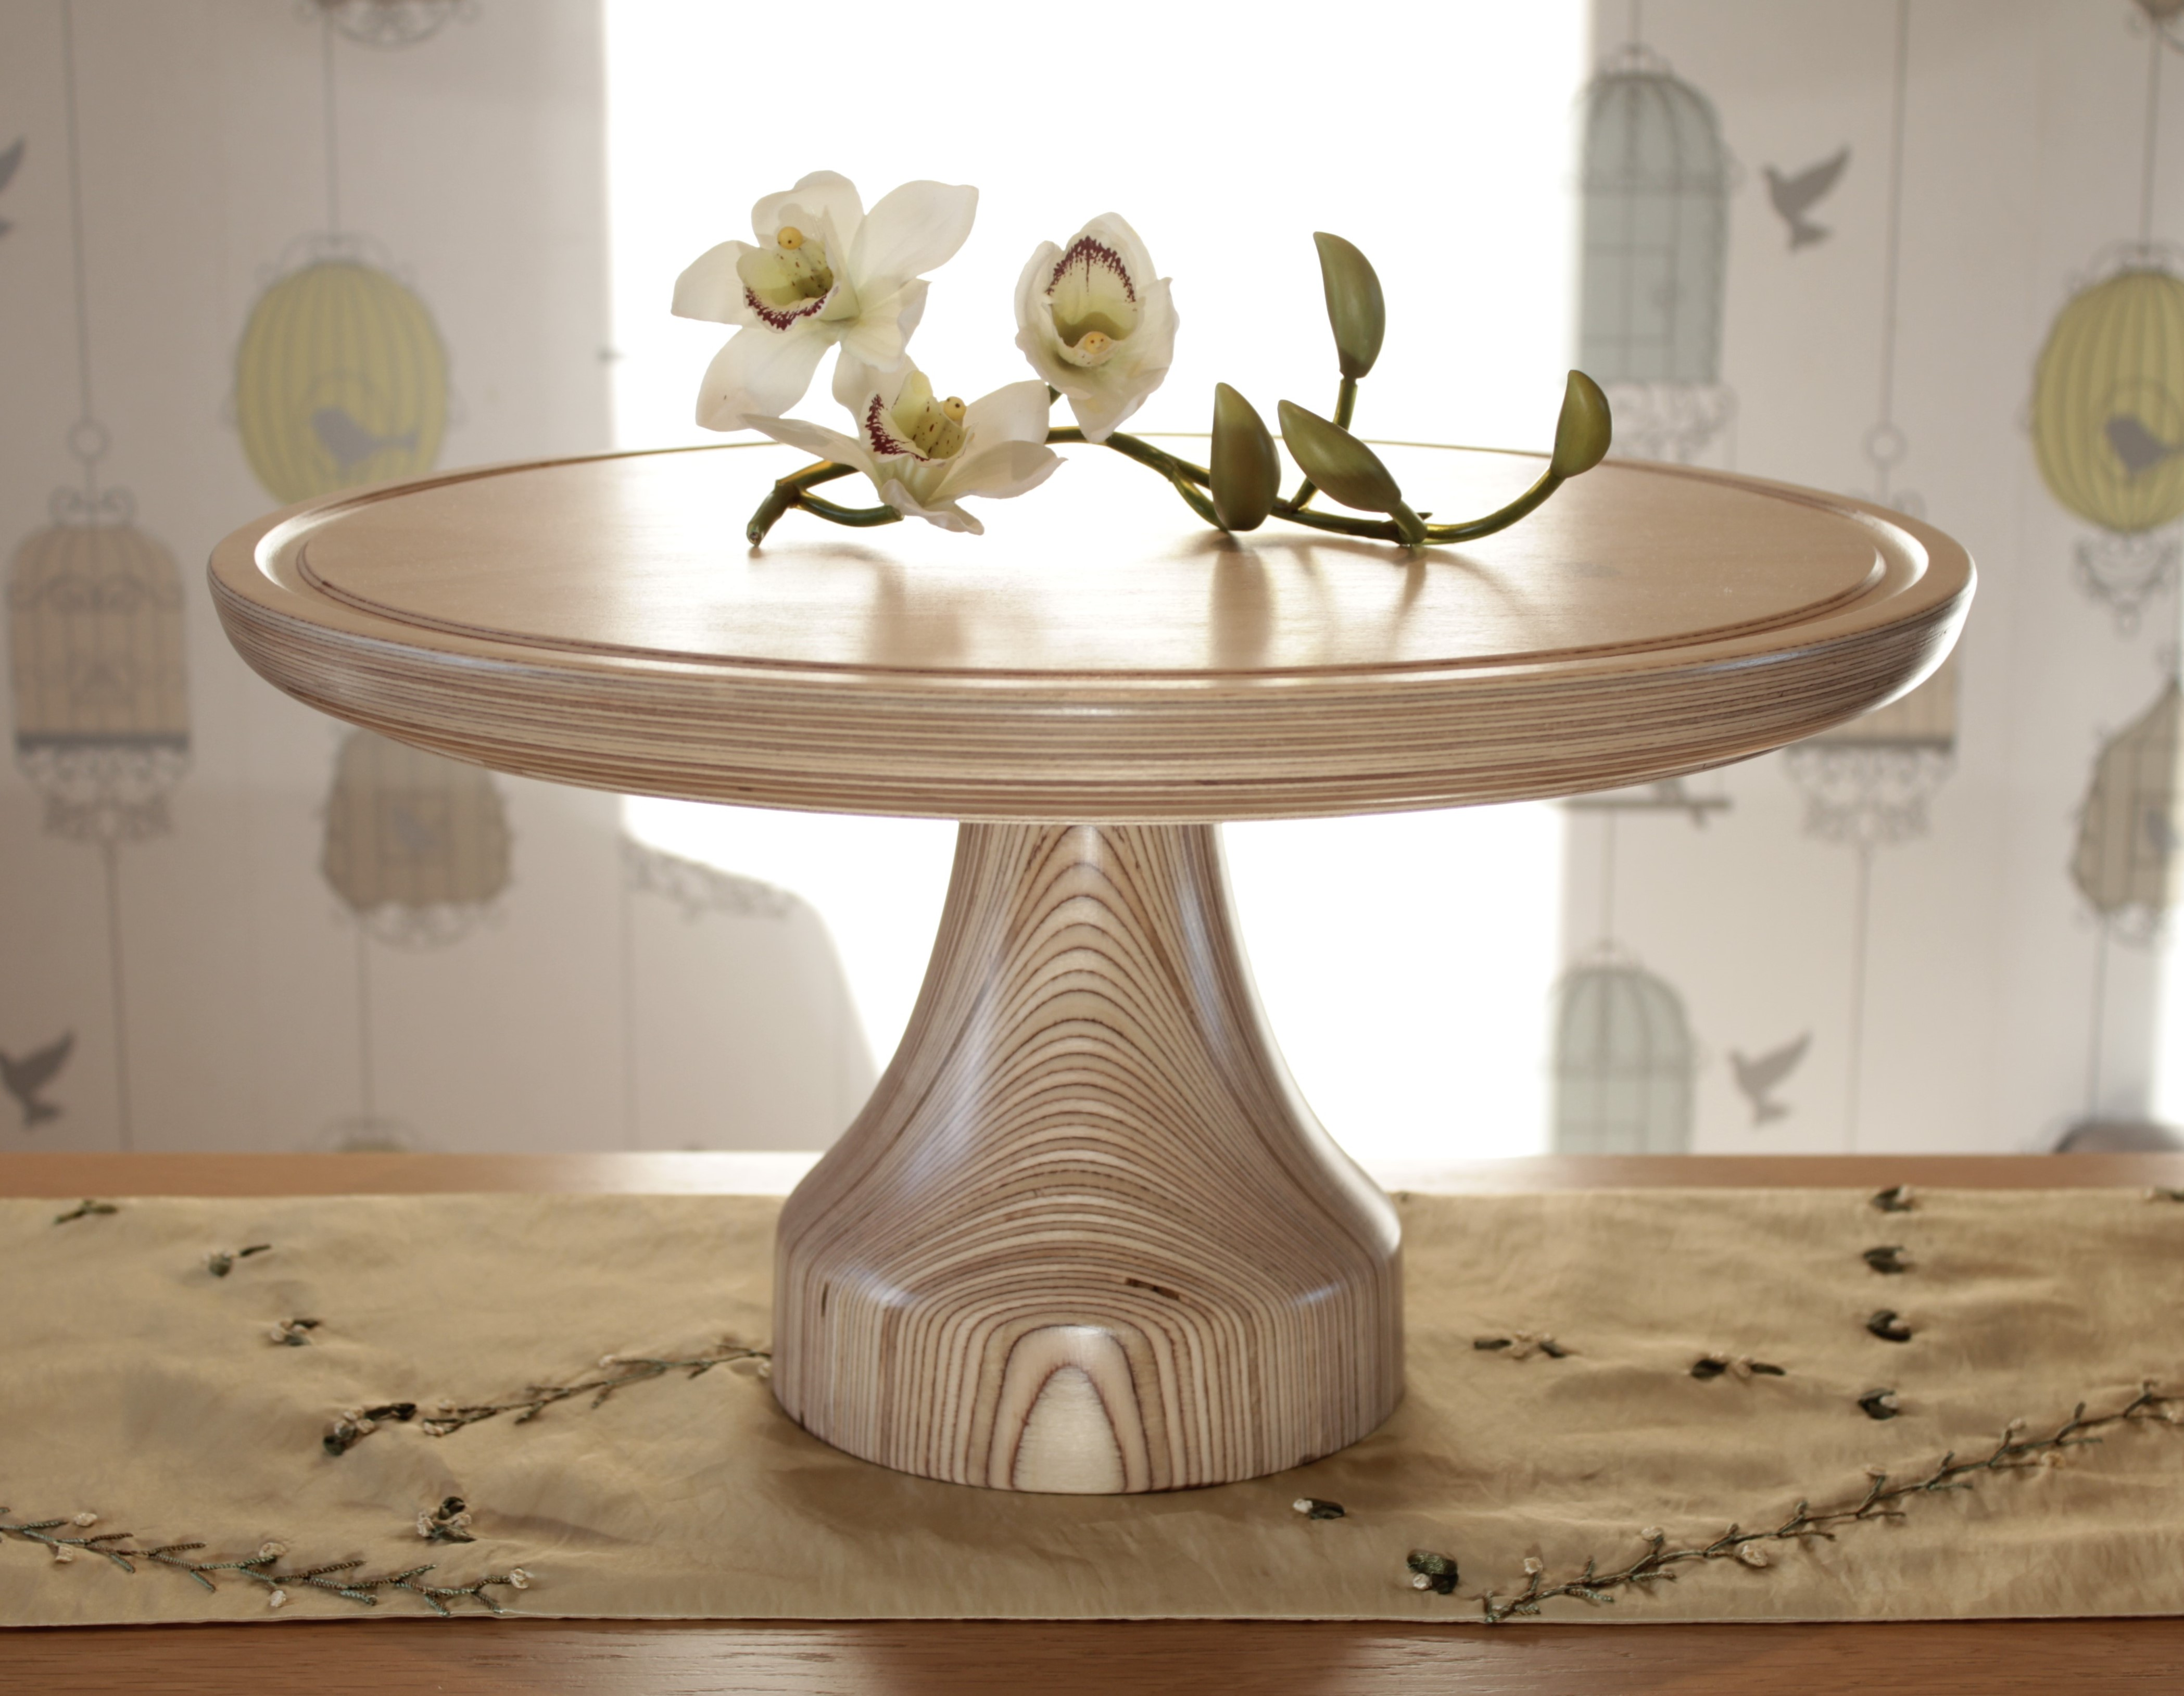 "Ideal for a Wedding cake, or other celebration, birthday, anniversary. To fit 16"" cake board. 46.5cm (18.3"") across. 24cm (9.5"") tall"